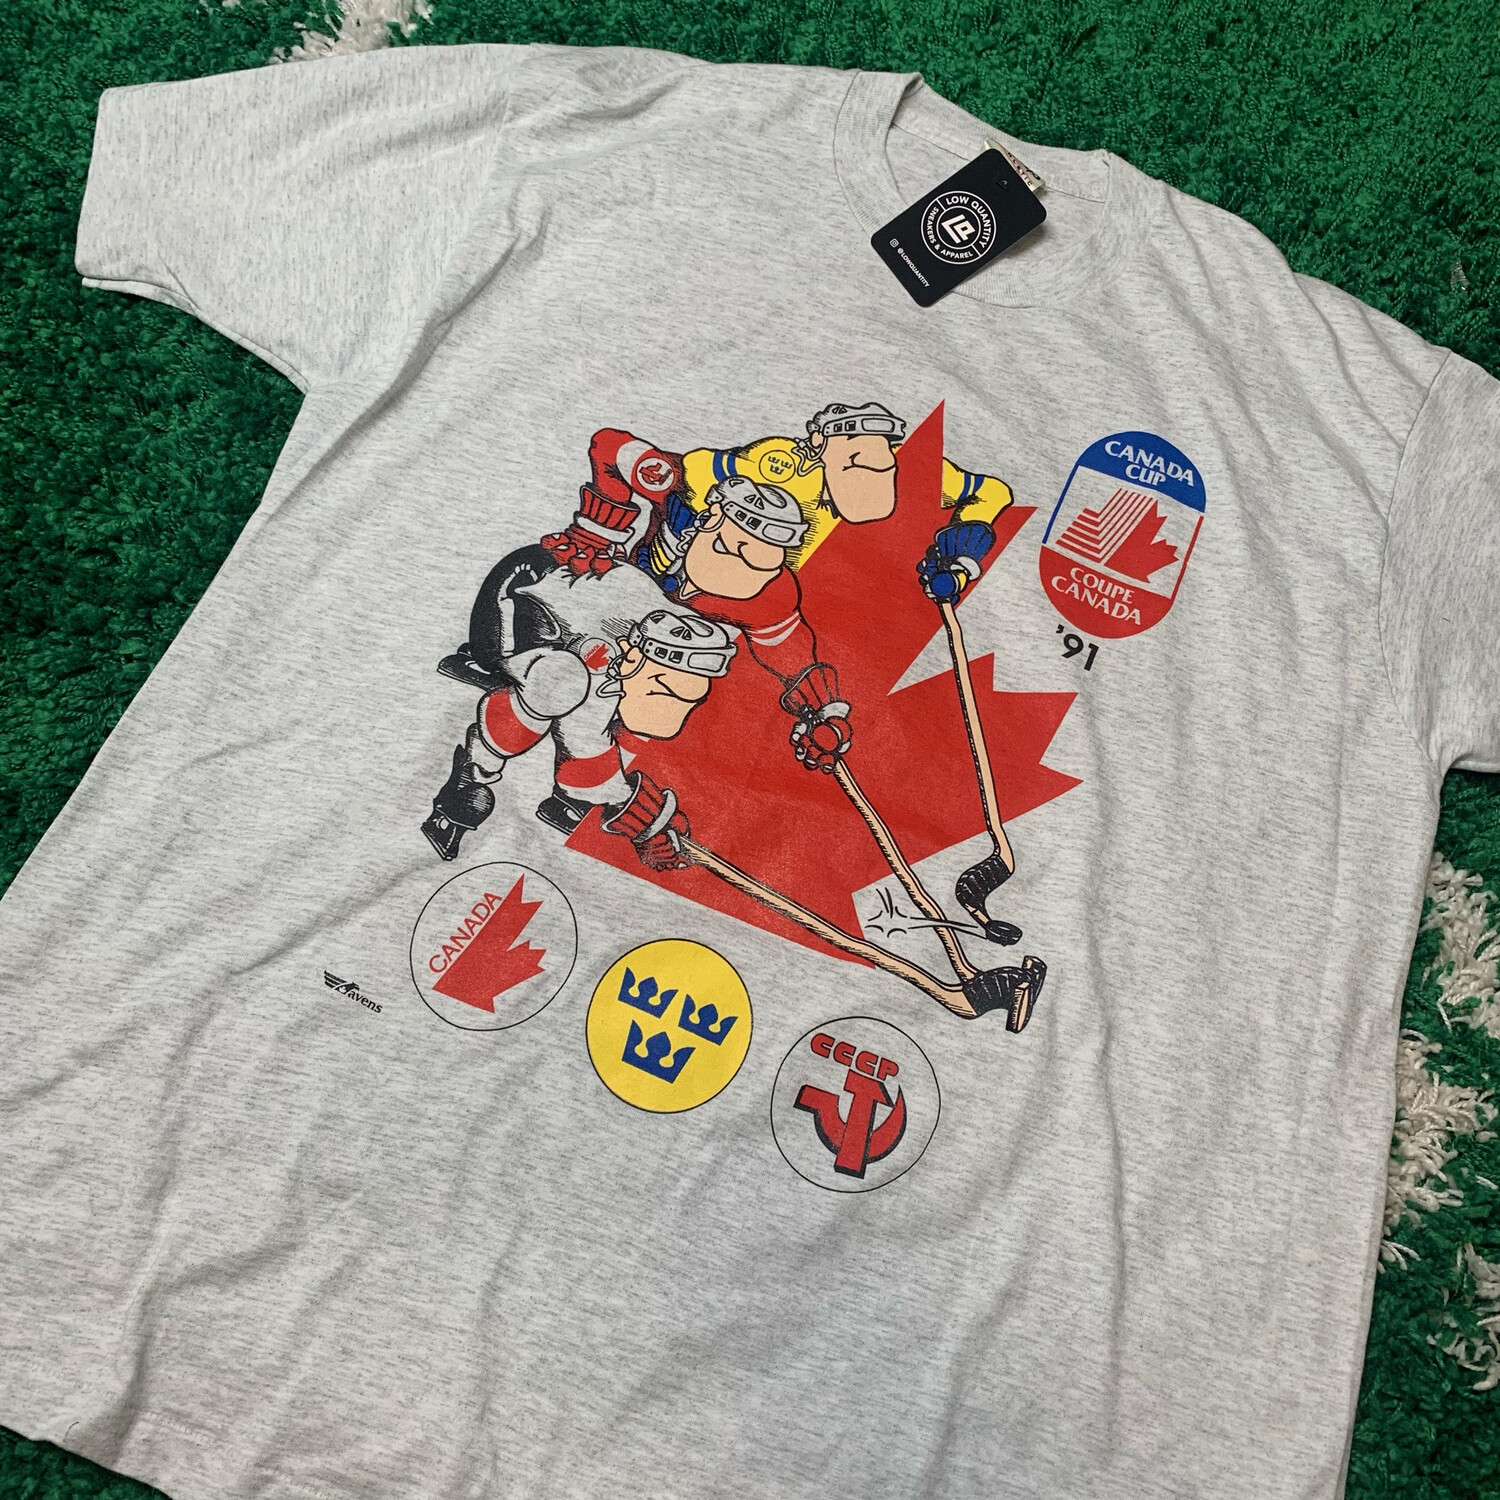 Canada Cup 1991 Tee Size XL